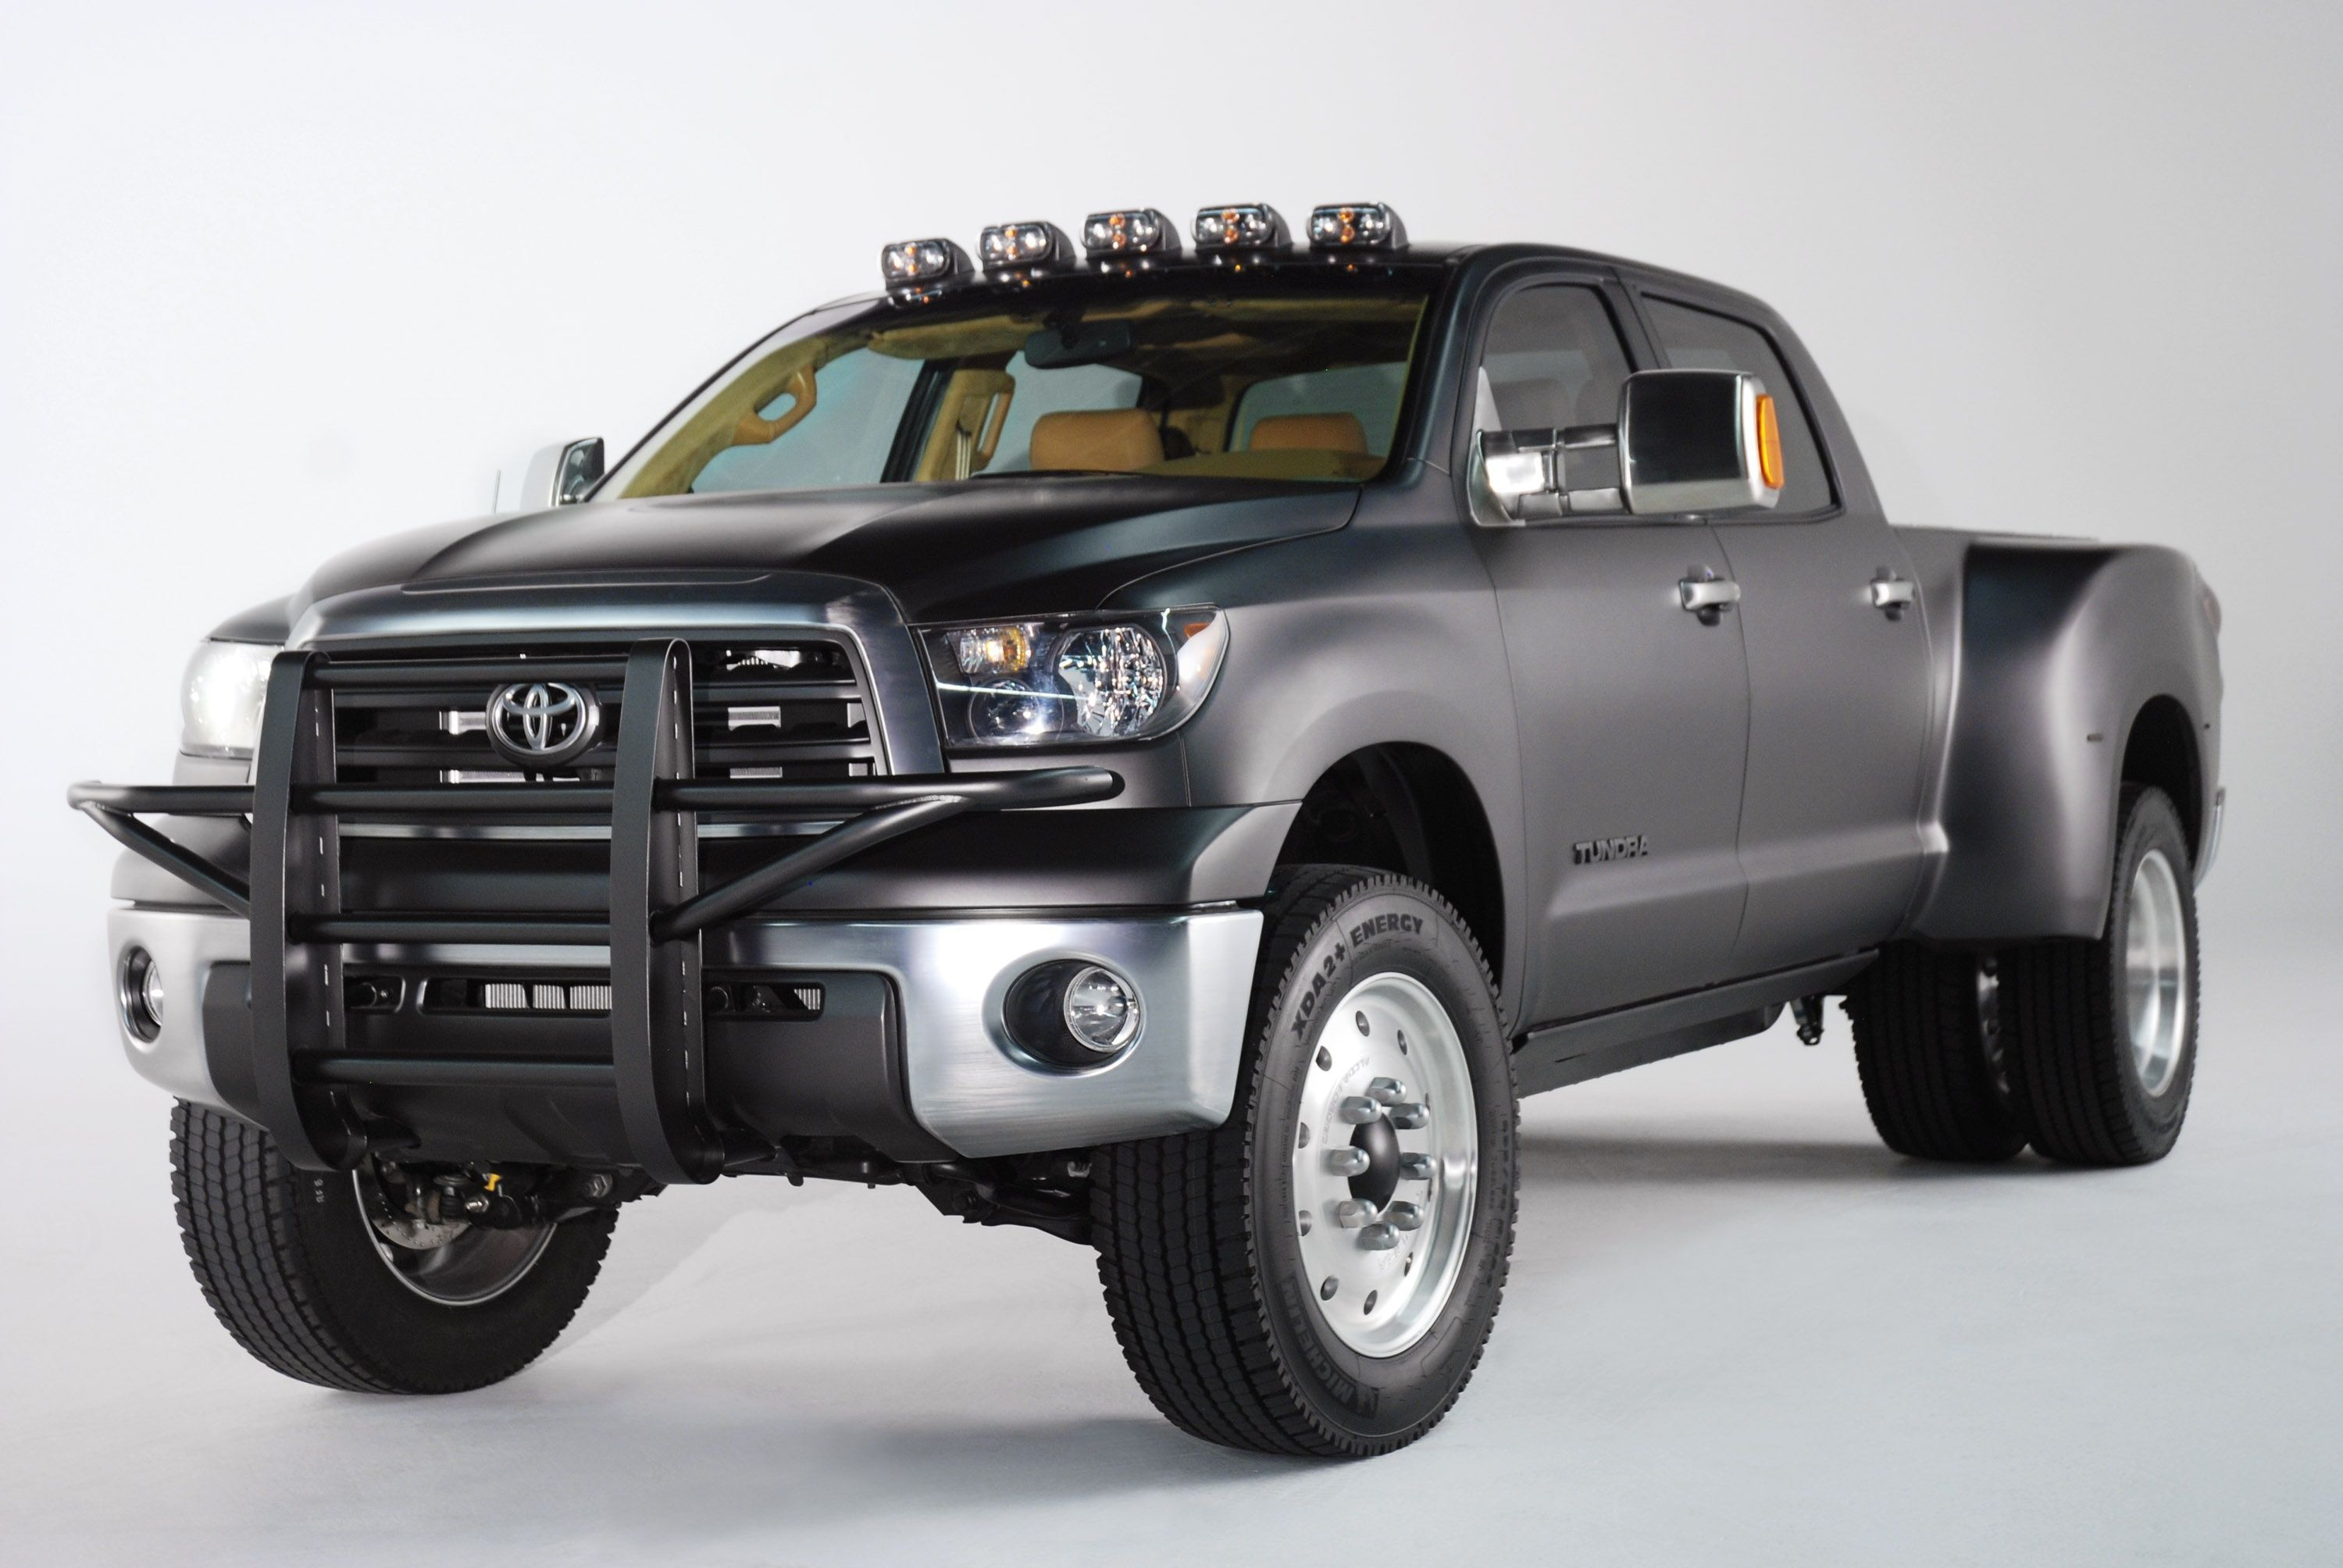 2015 Toyota Tundra Diesel Dually  Trucks Gallery  cars